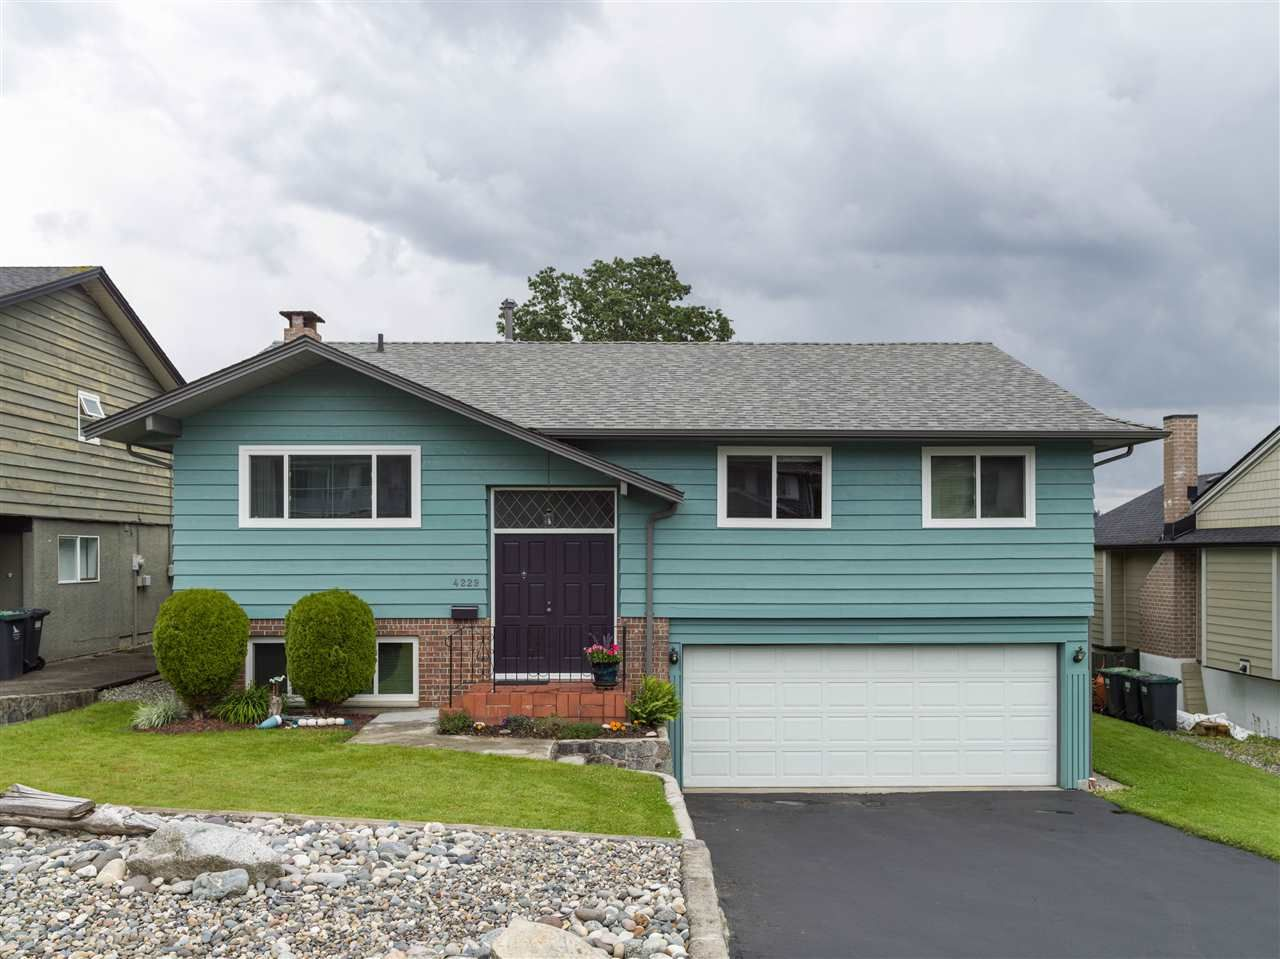 Main Photo: 4229 GLENHAVEN Crescent in North Vancouver: Dollarton House for sale : MLS®# R2465673